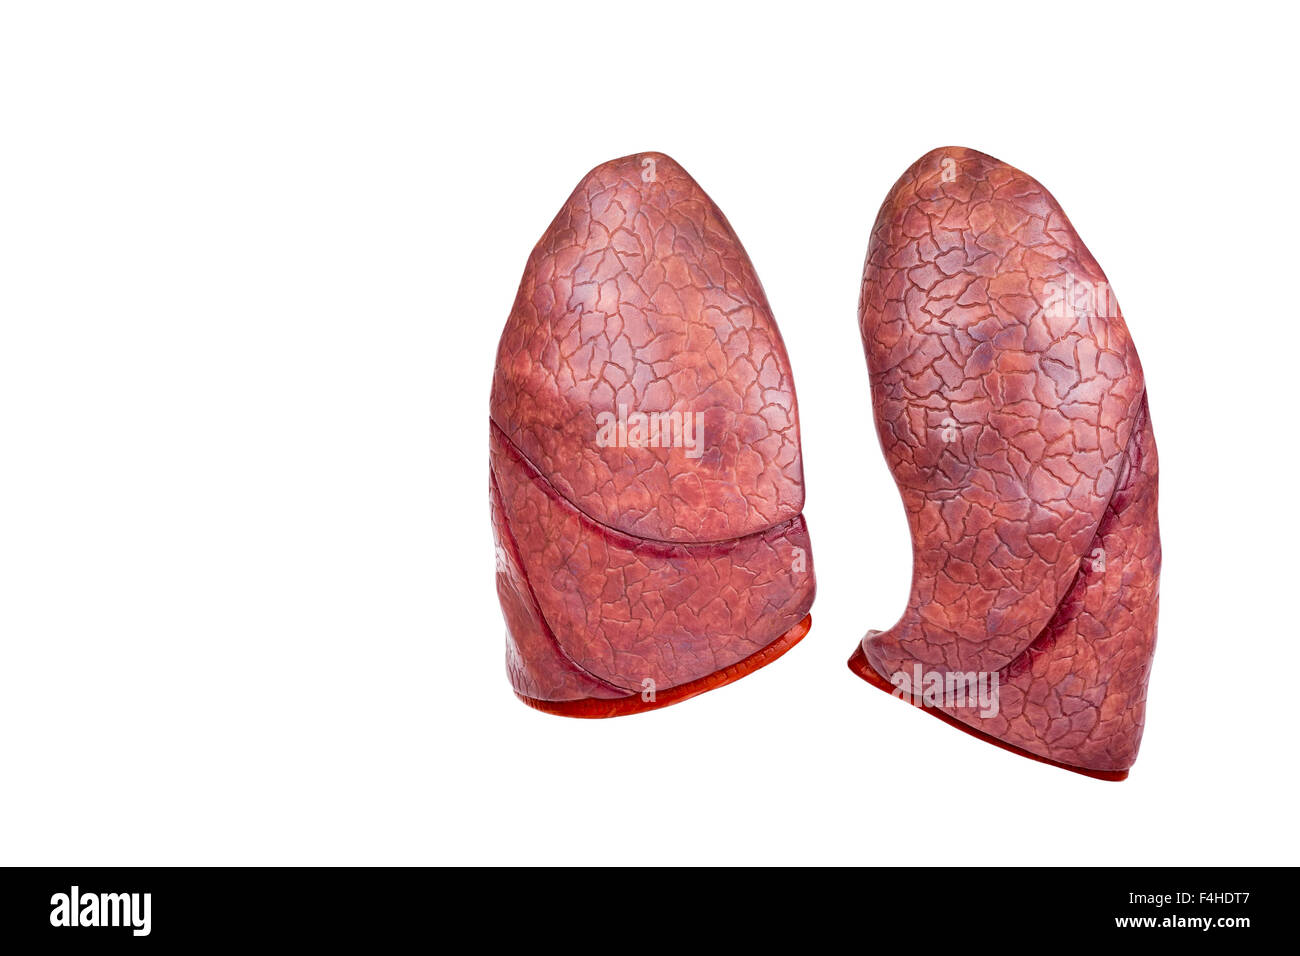 Two human model lungs isolated on white background - Stock Image